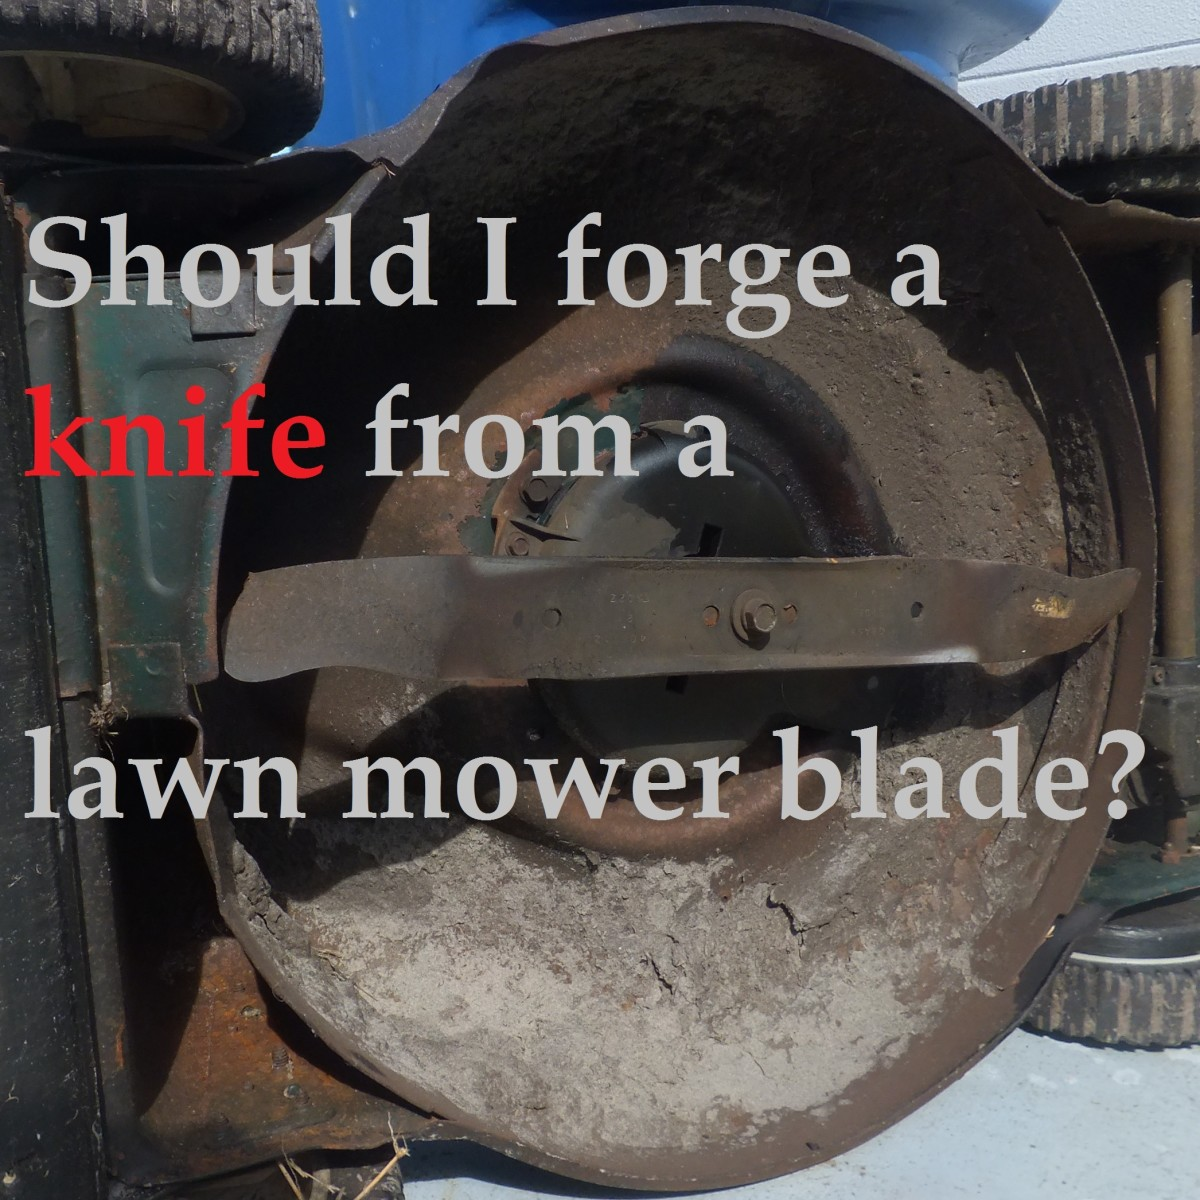 Basic Blacksmithing: Should I forge a knife from a lawnmower blade?